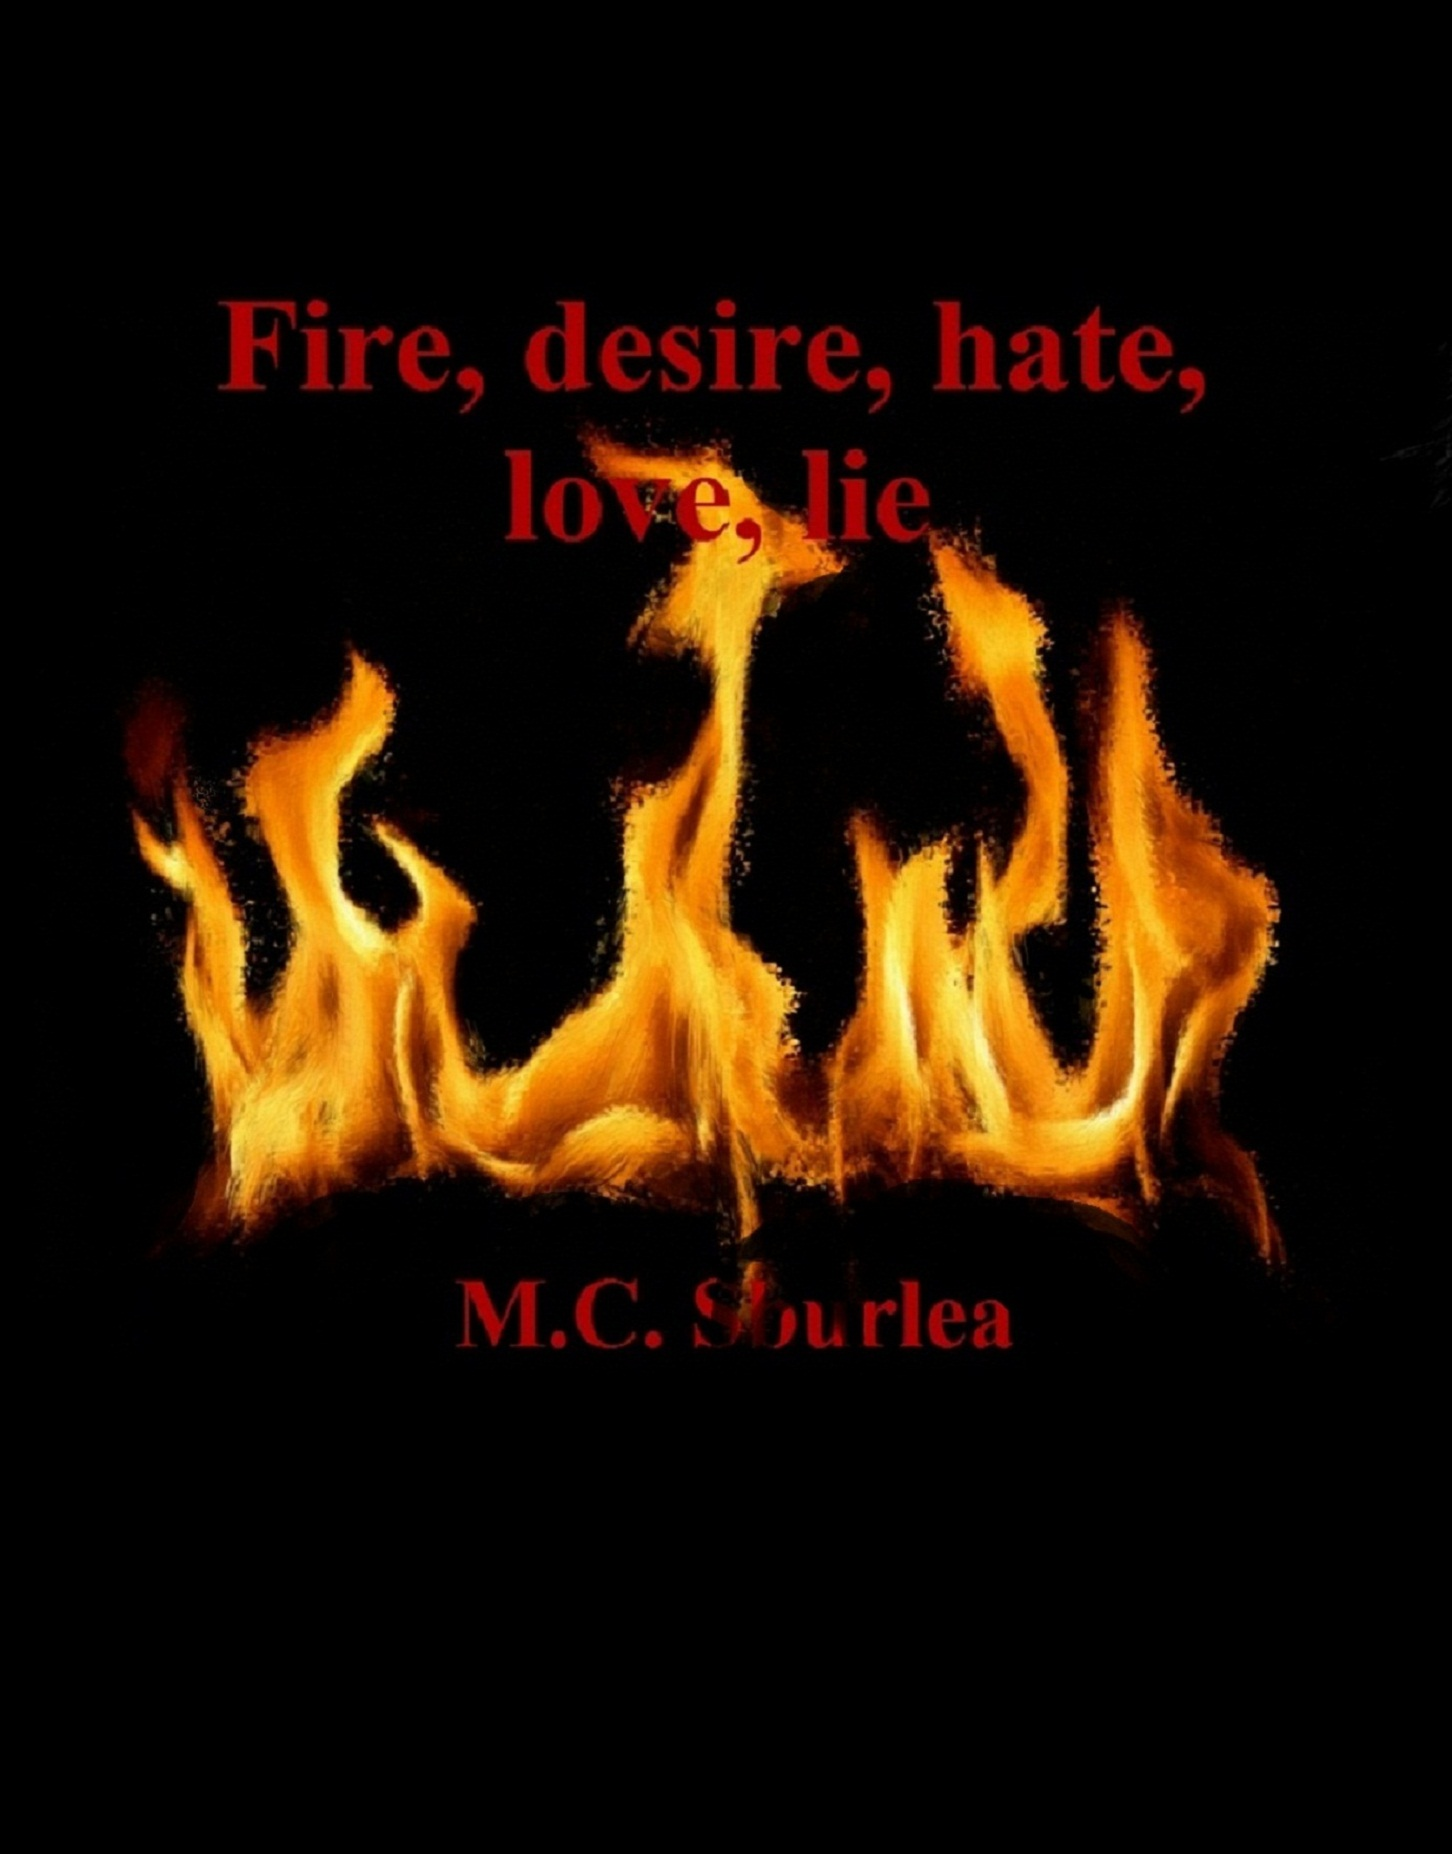 org view topic fire desire hate love lie image